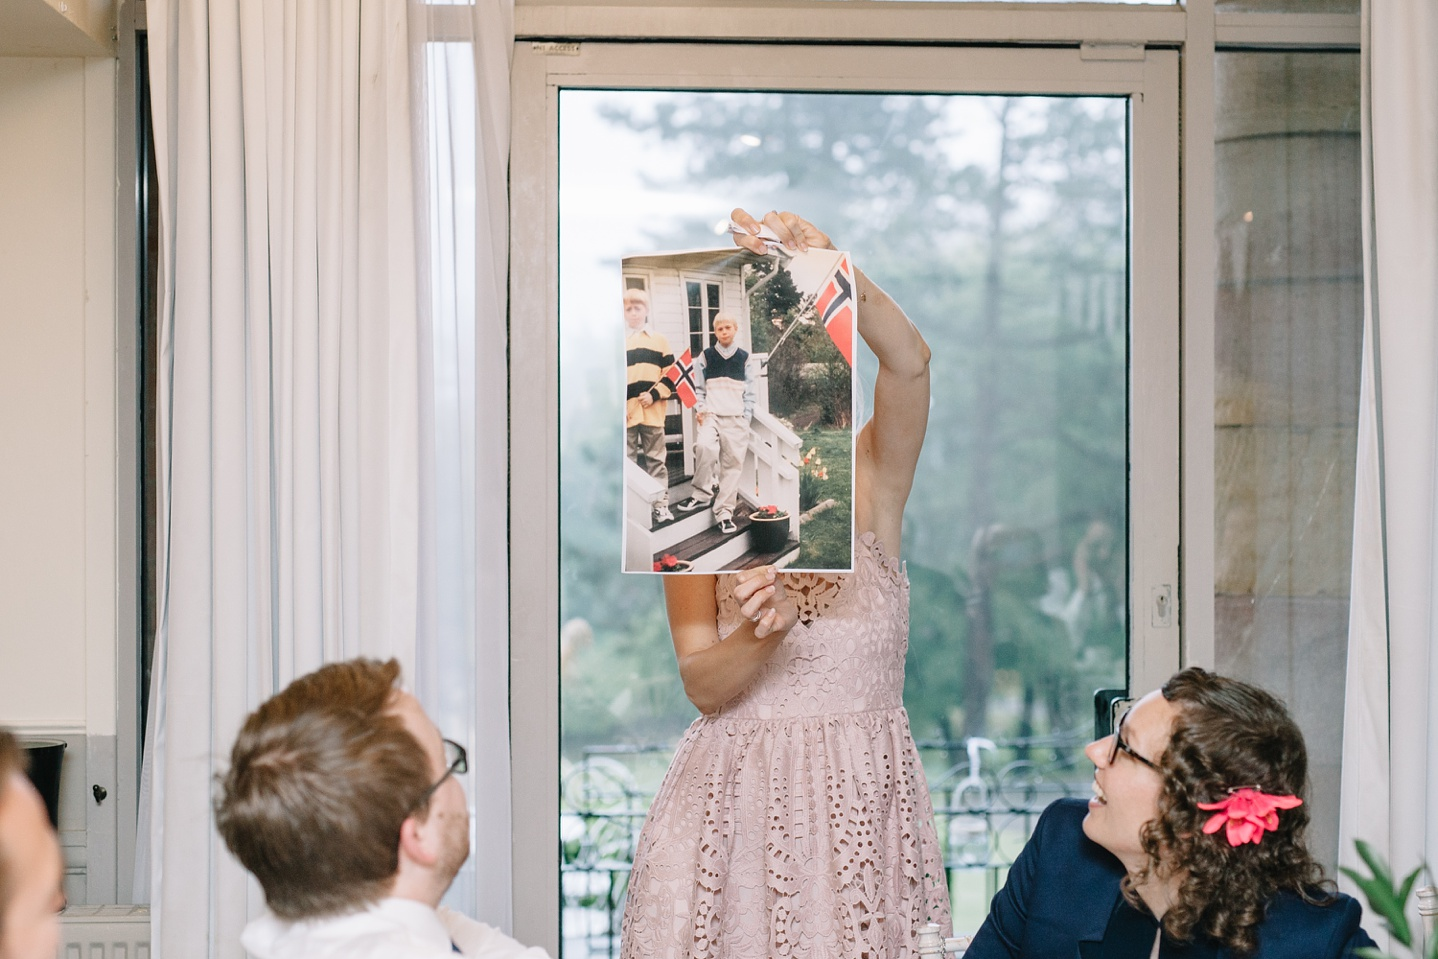 grooms sister holding up embarrassing childhood photo of groom